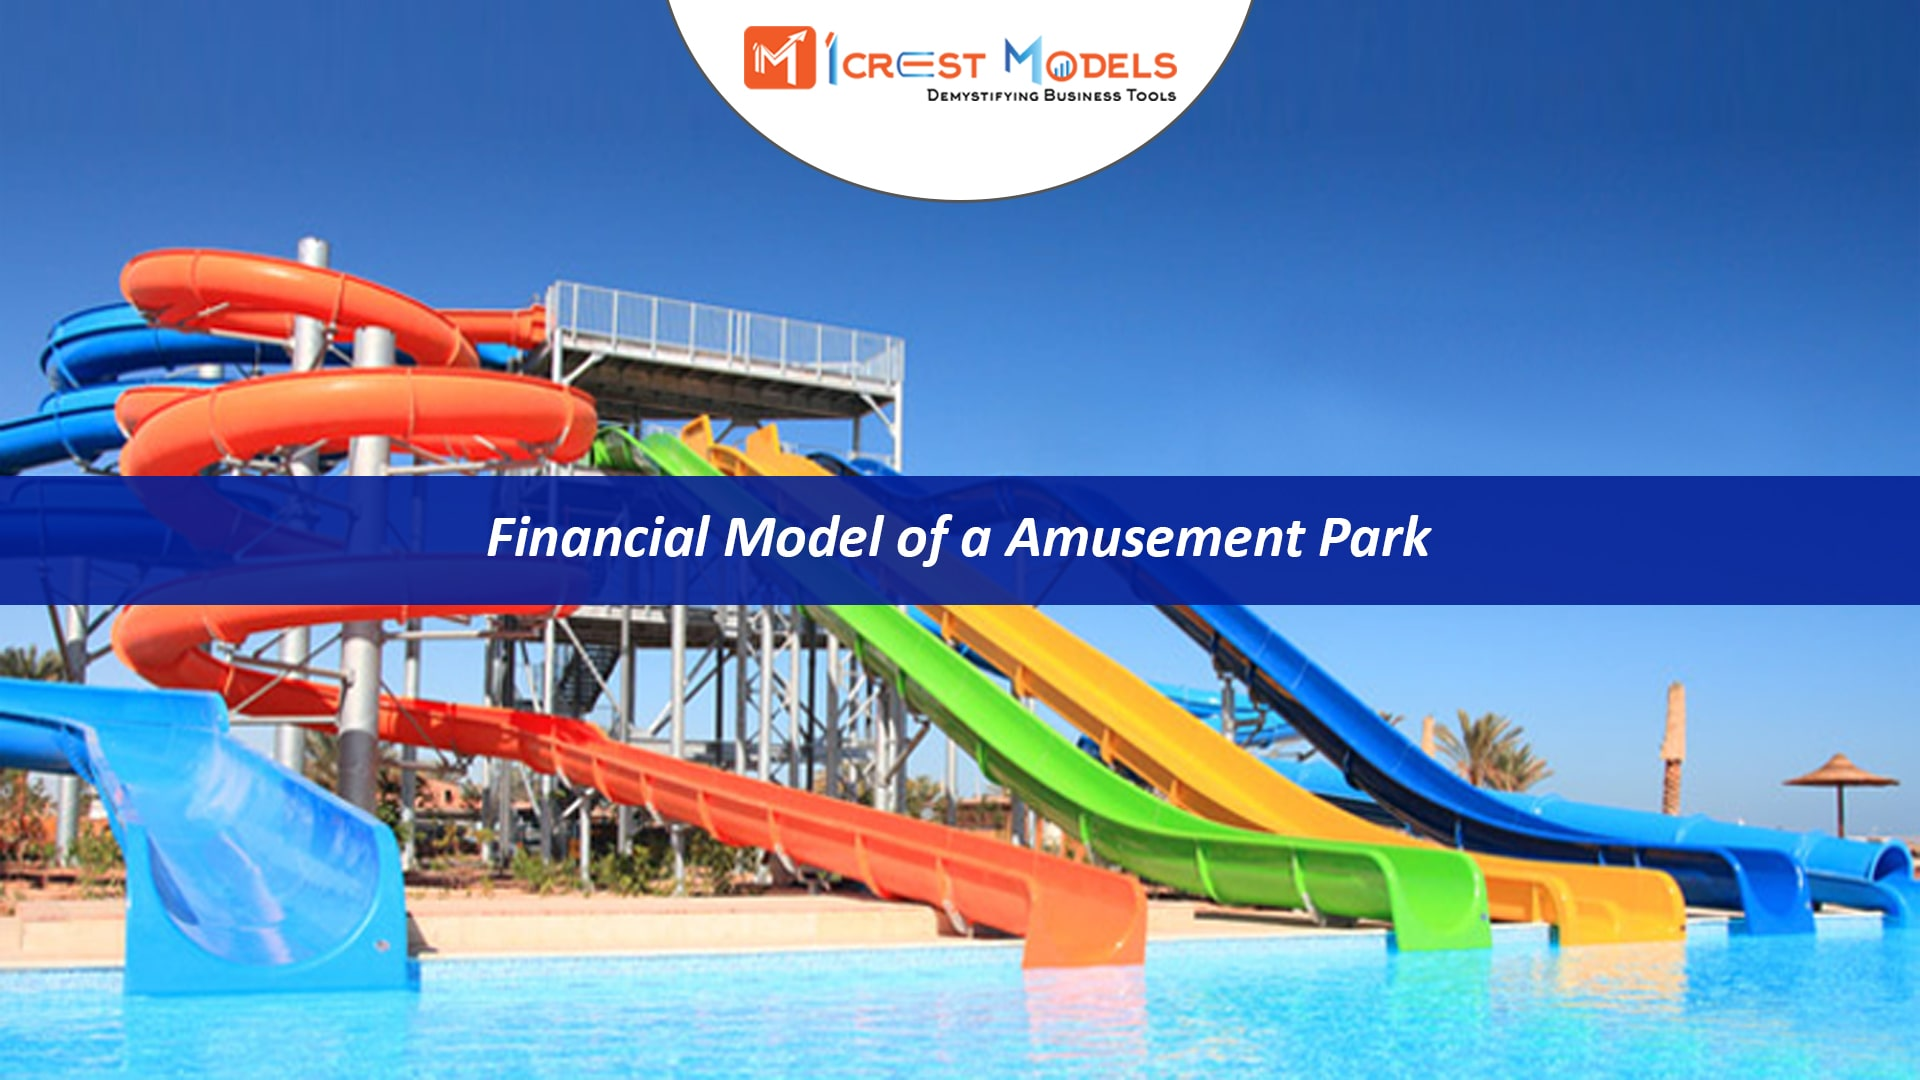 Financial Model of an Amusement Park